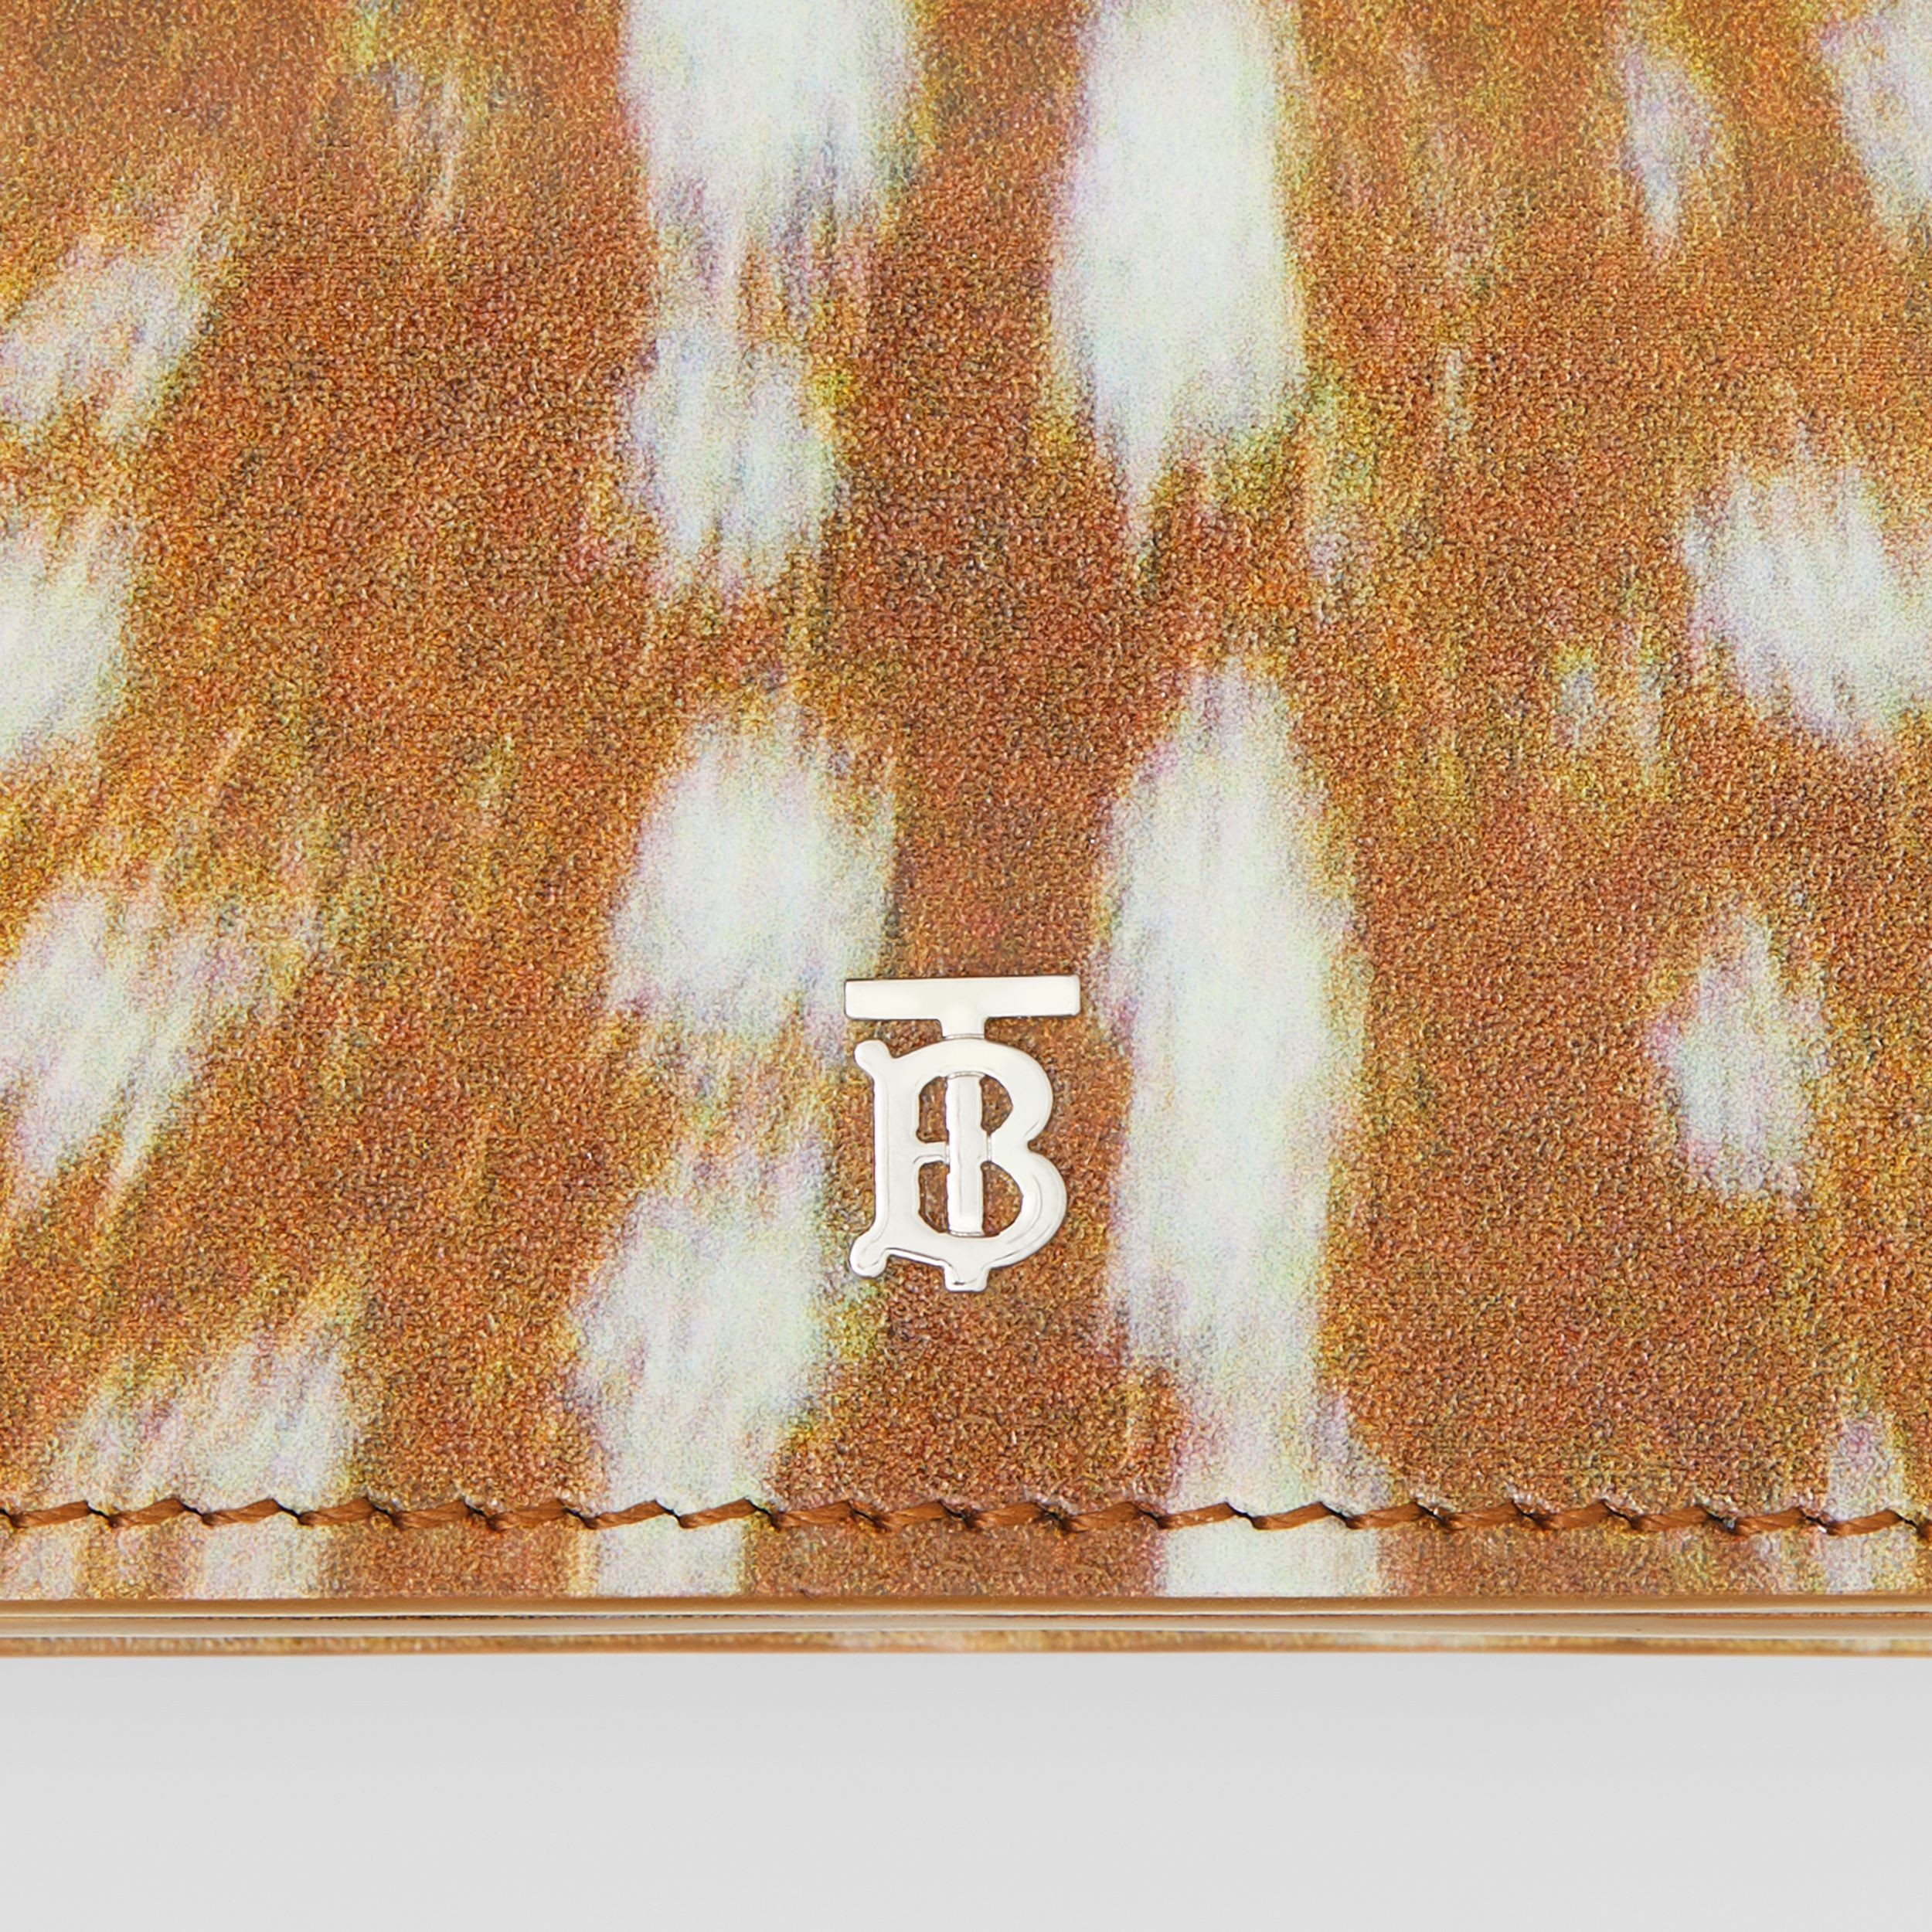 Deer Print Leather Card Case with Detachable Strap in Malt Brown - Women | Burberry Hong Kong S.A.R. - 2